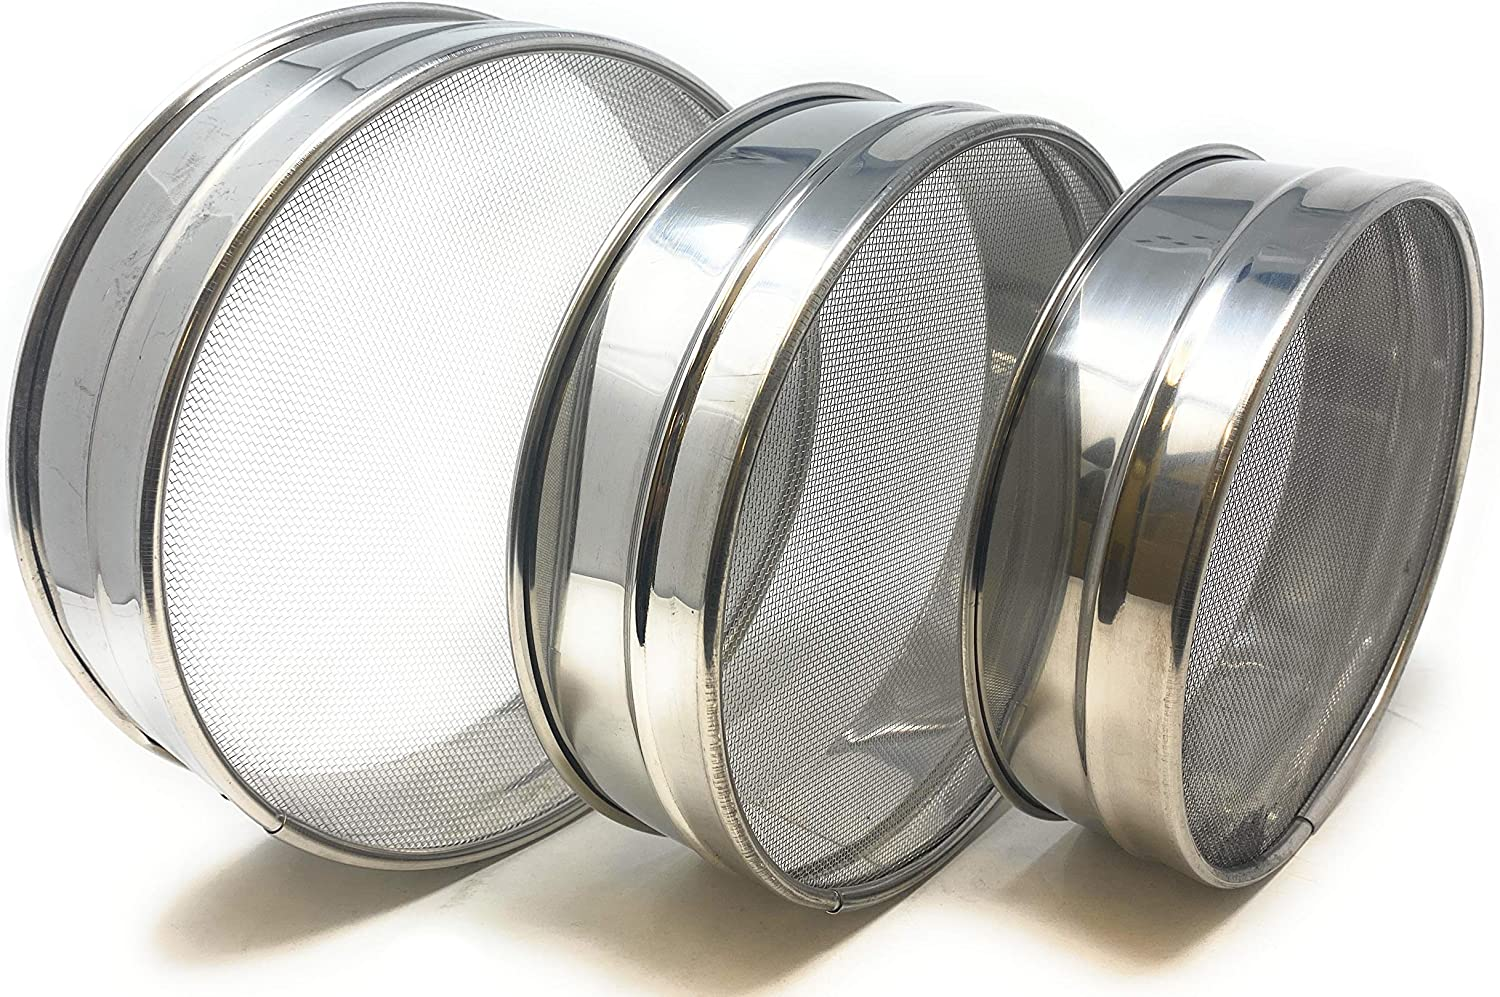 Stainless Steel Sieve ~ Set of 3 ~ for Flours 8.25 by Rani Brand Seeds 7.5 Sizes 6.7 Beans /& Lentils